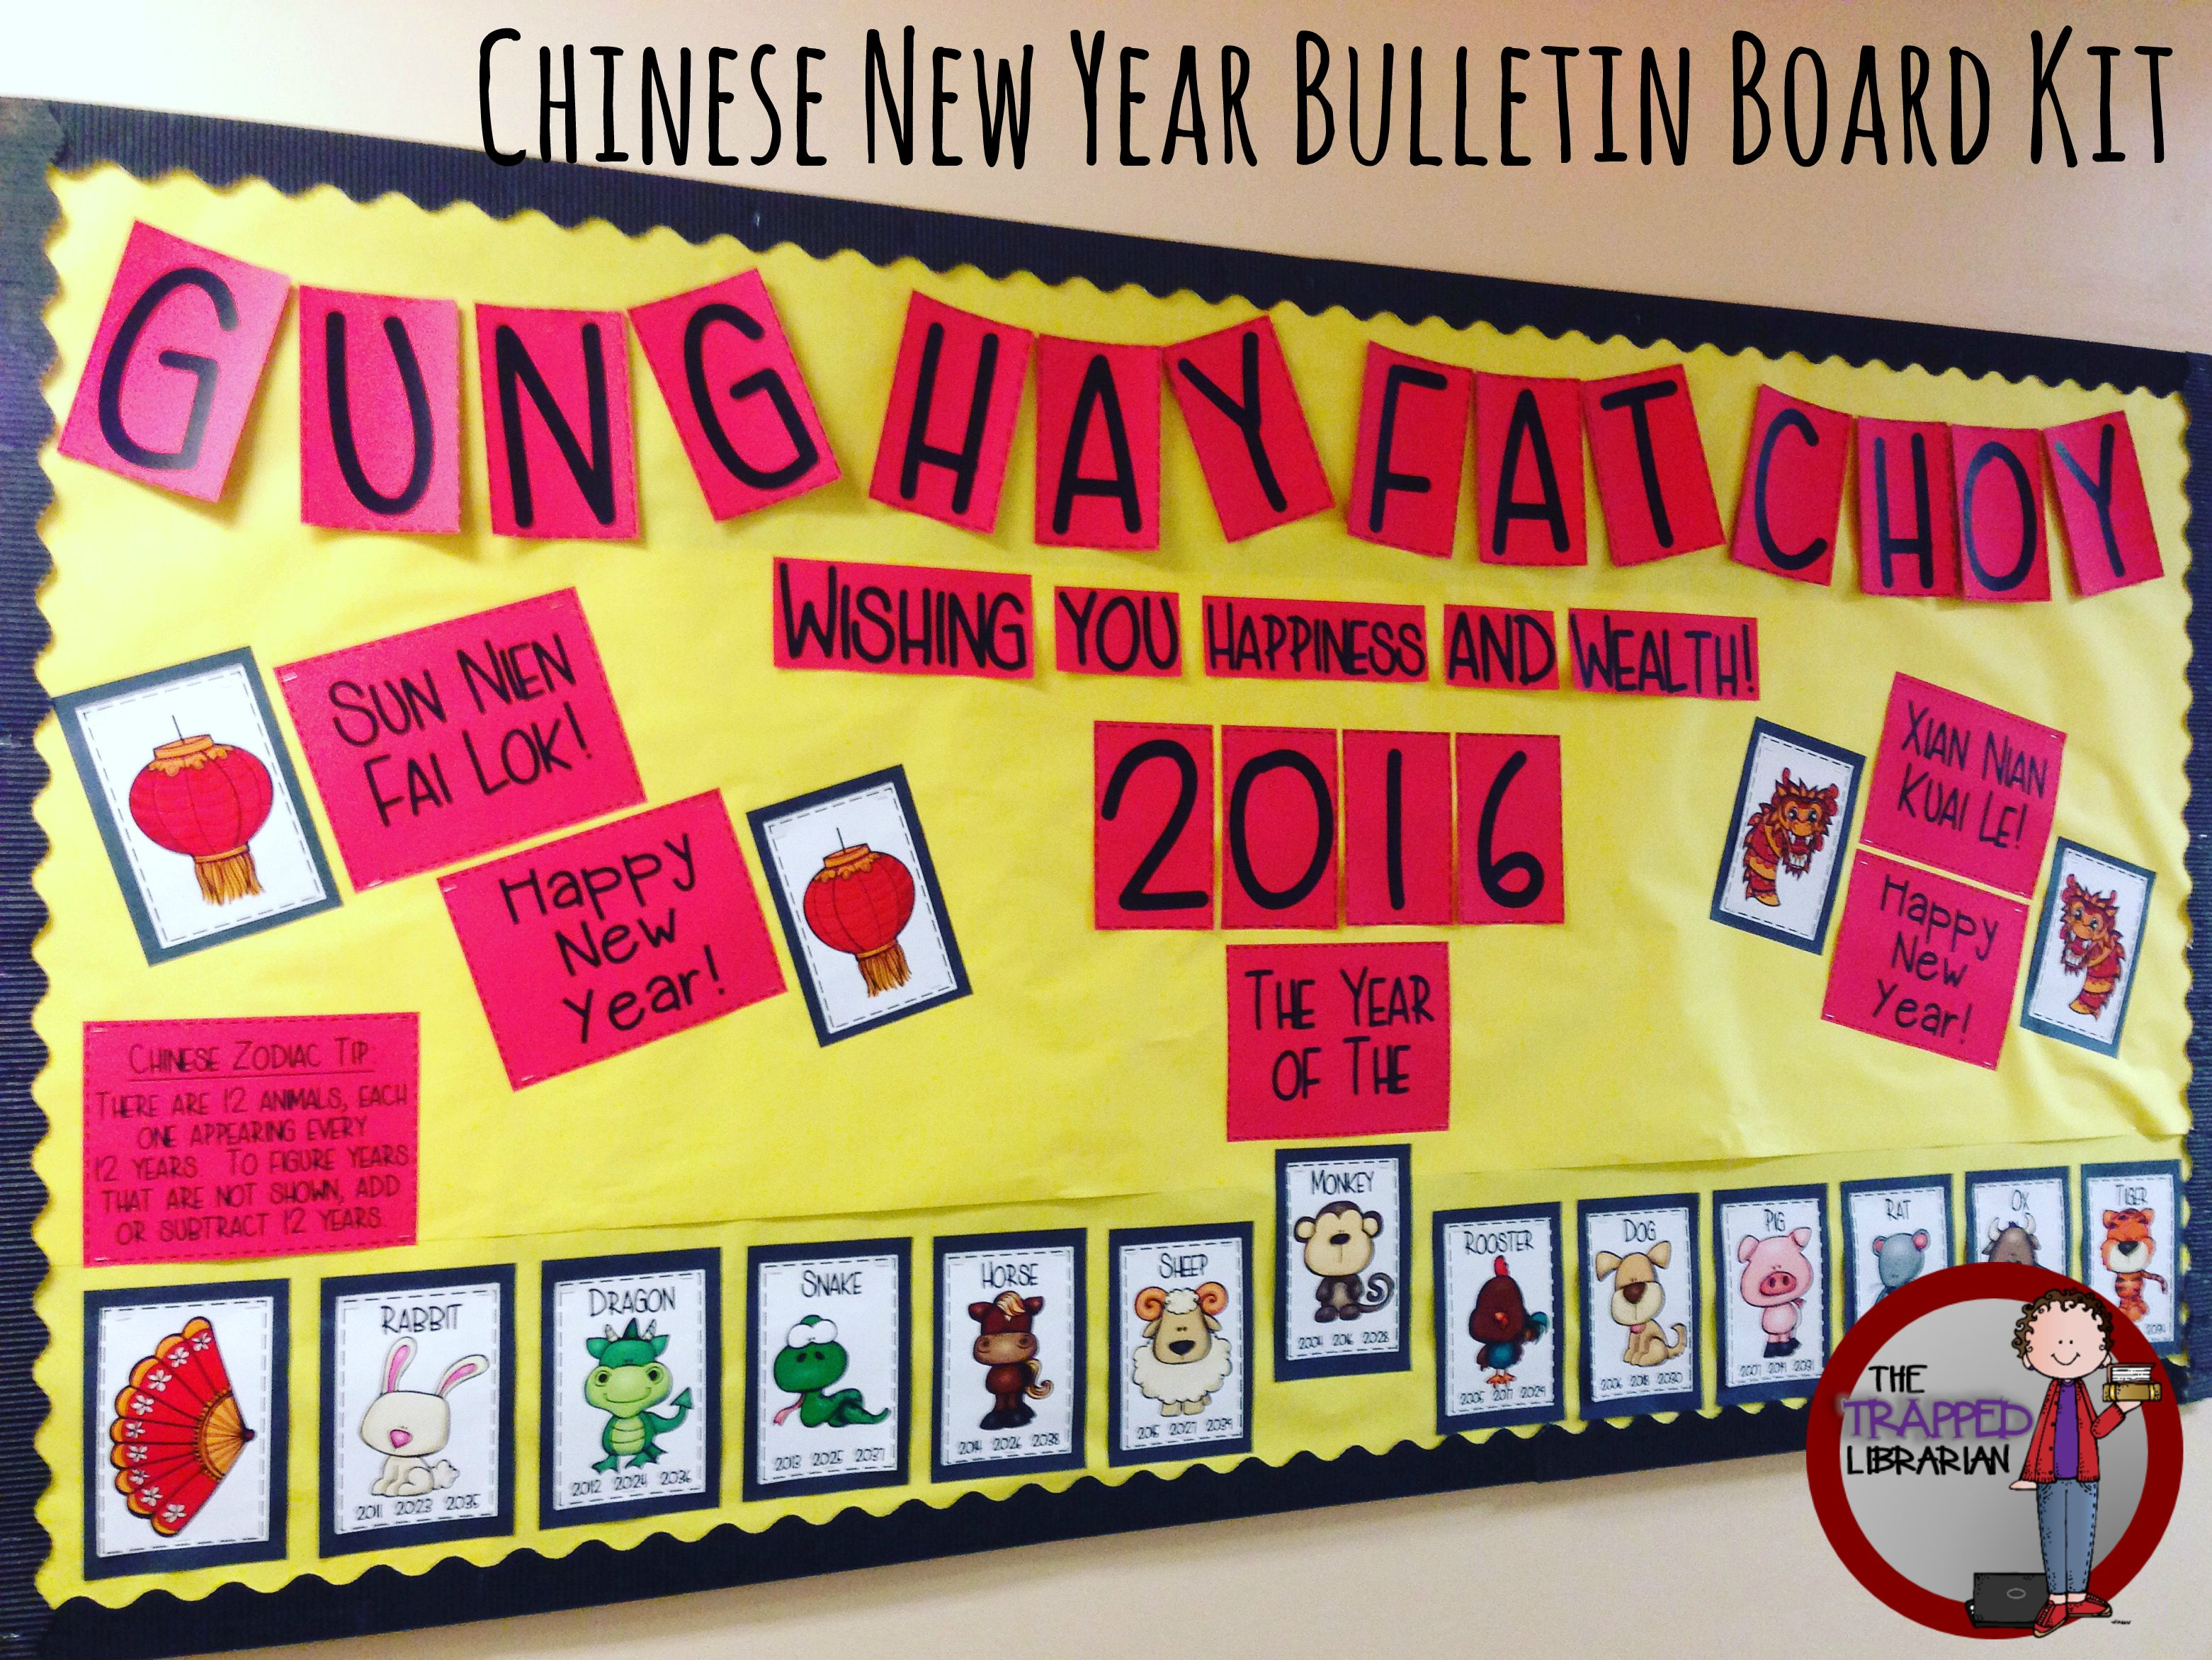 Chinese New Year Bulletin Board Kit | Chinese new year ...